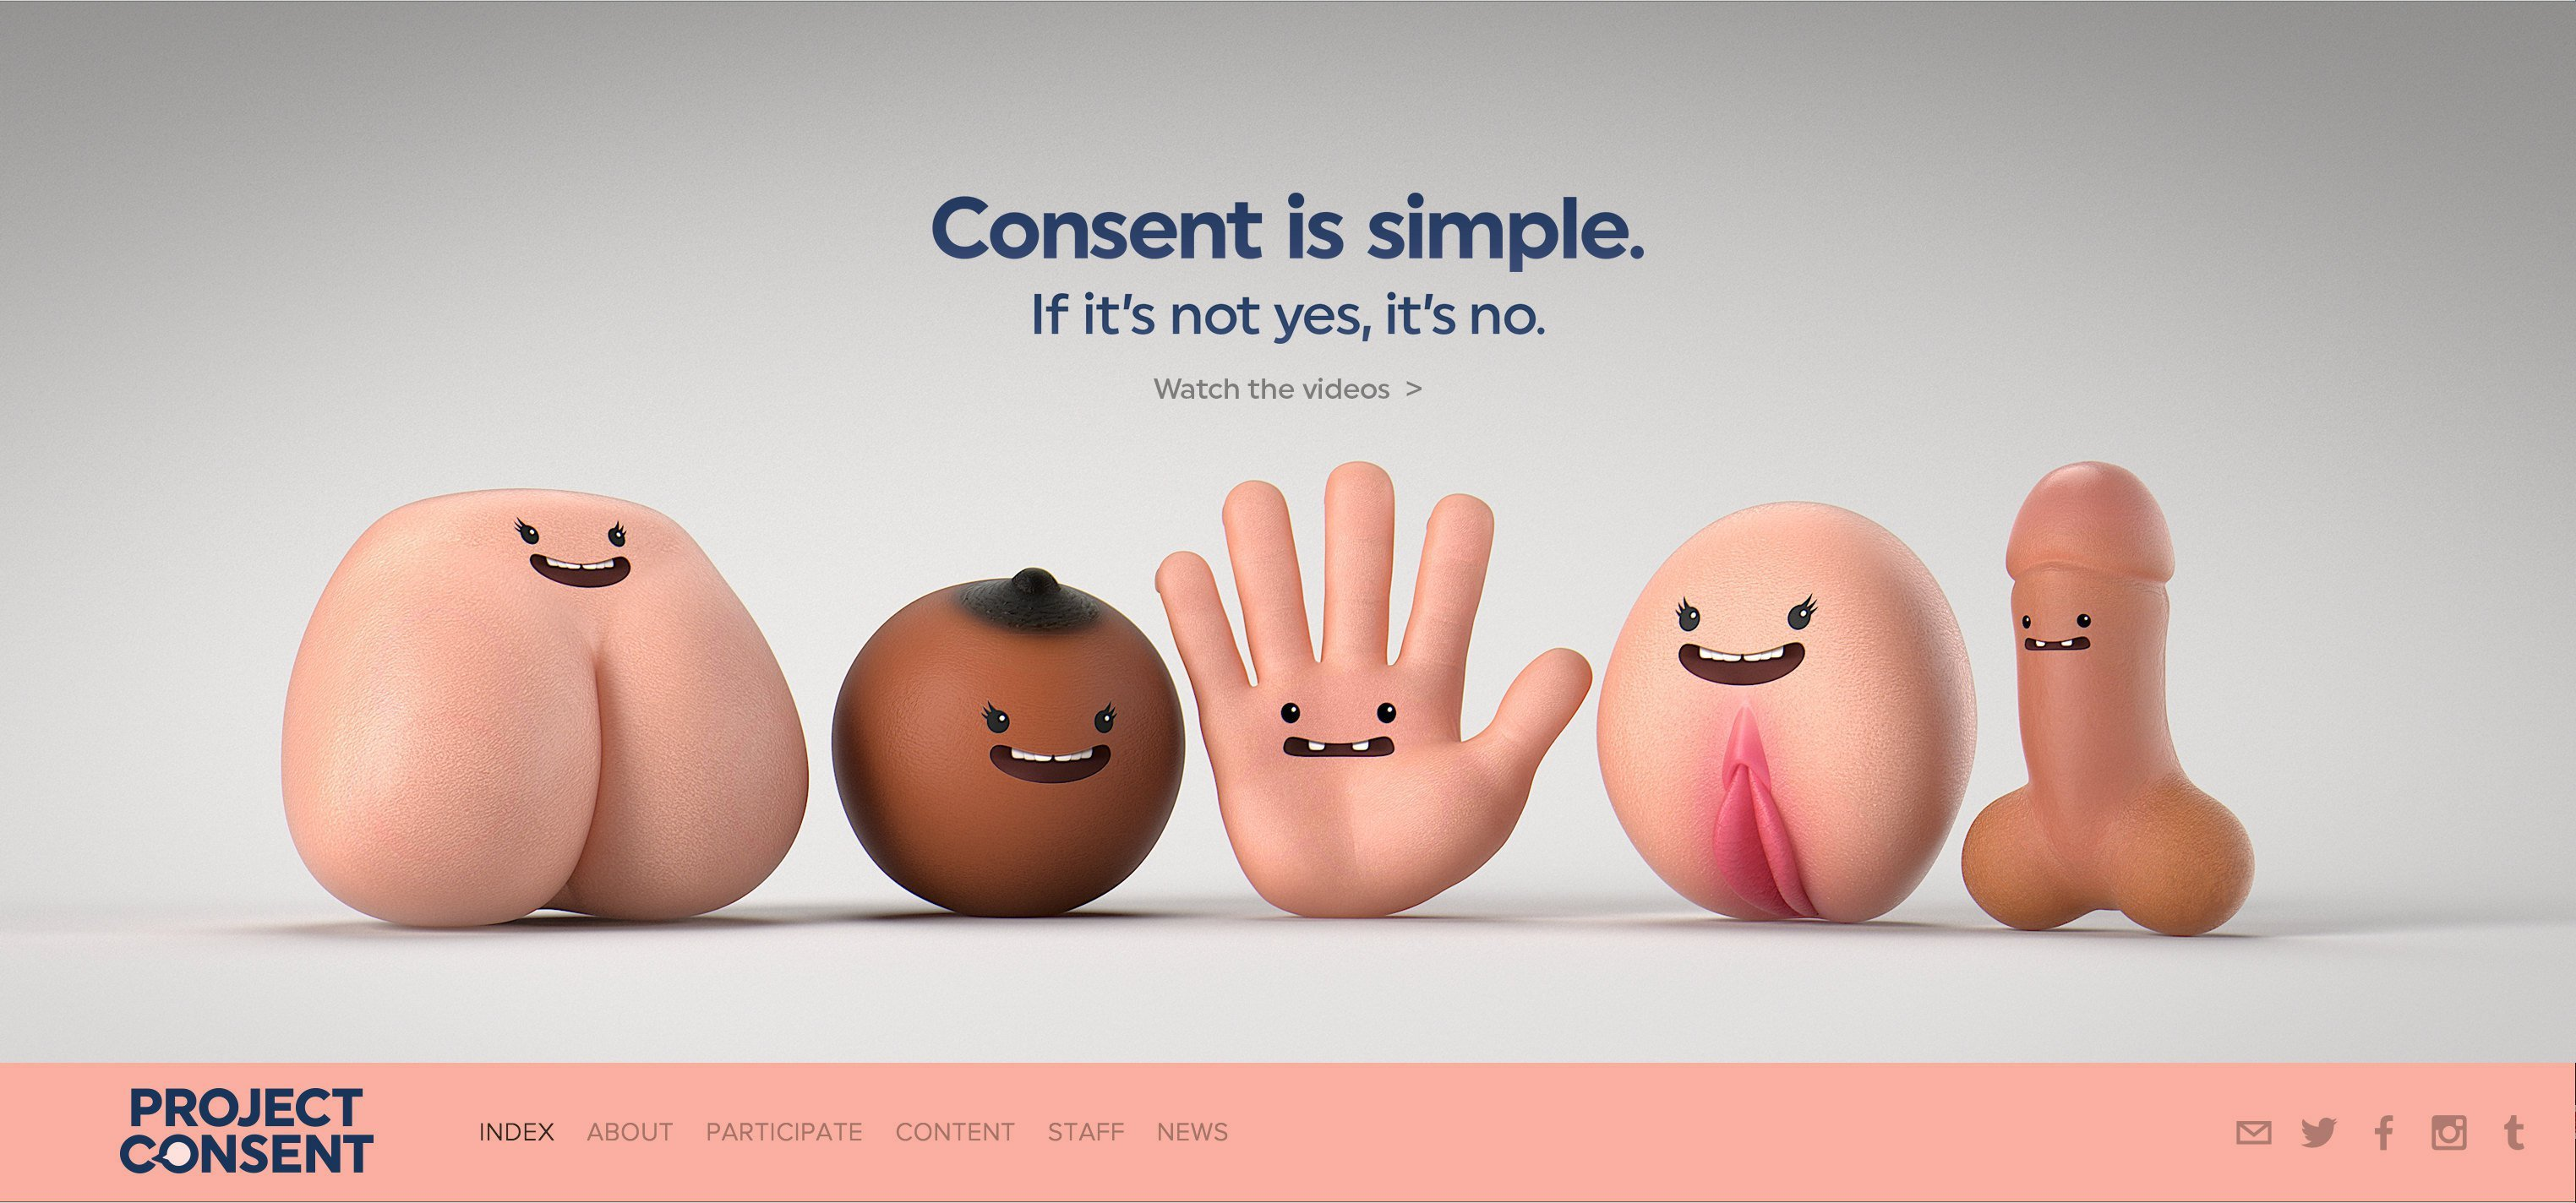 Animated Penis Pics these animated videos explain consent and tell it like it is